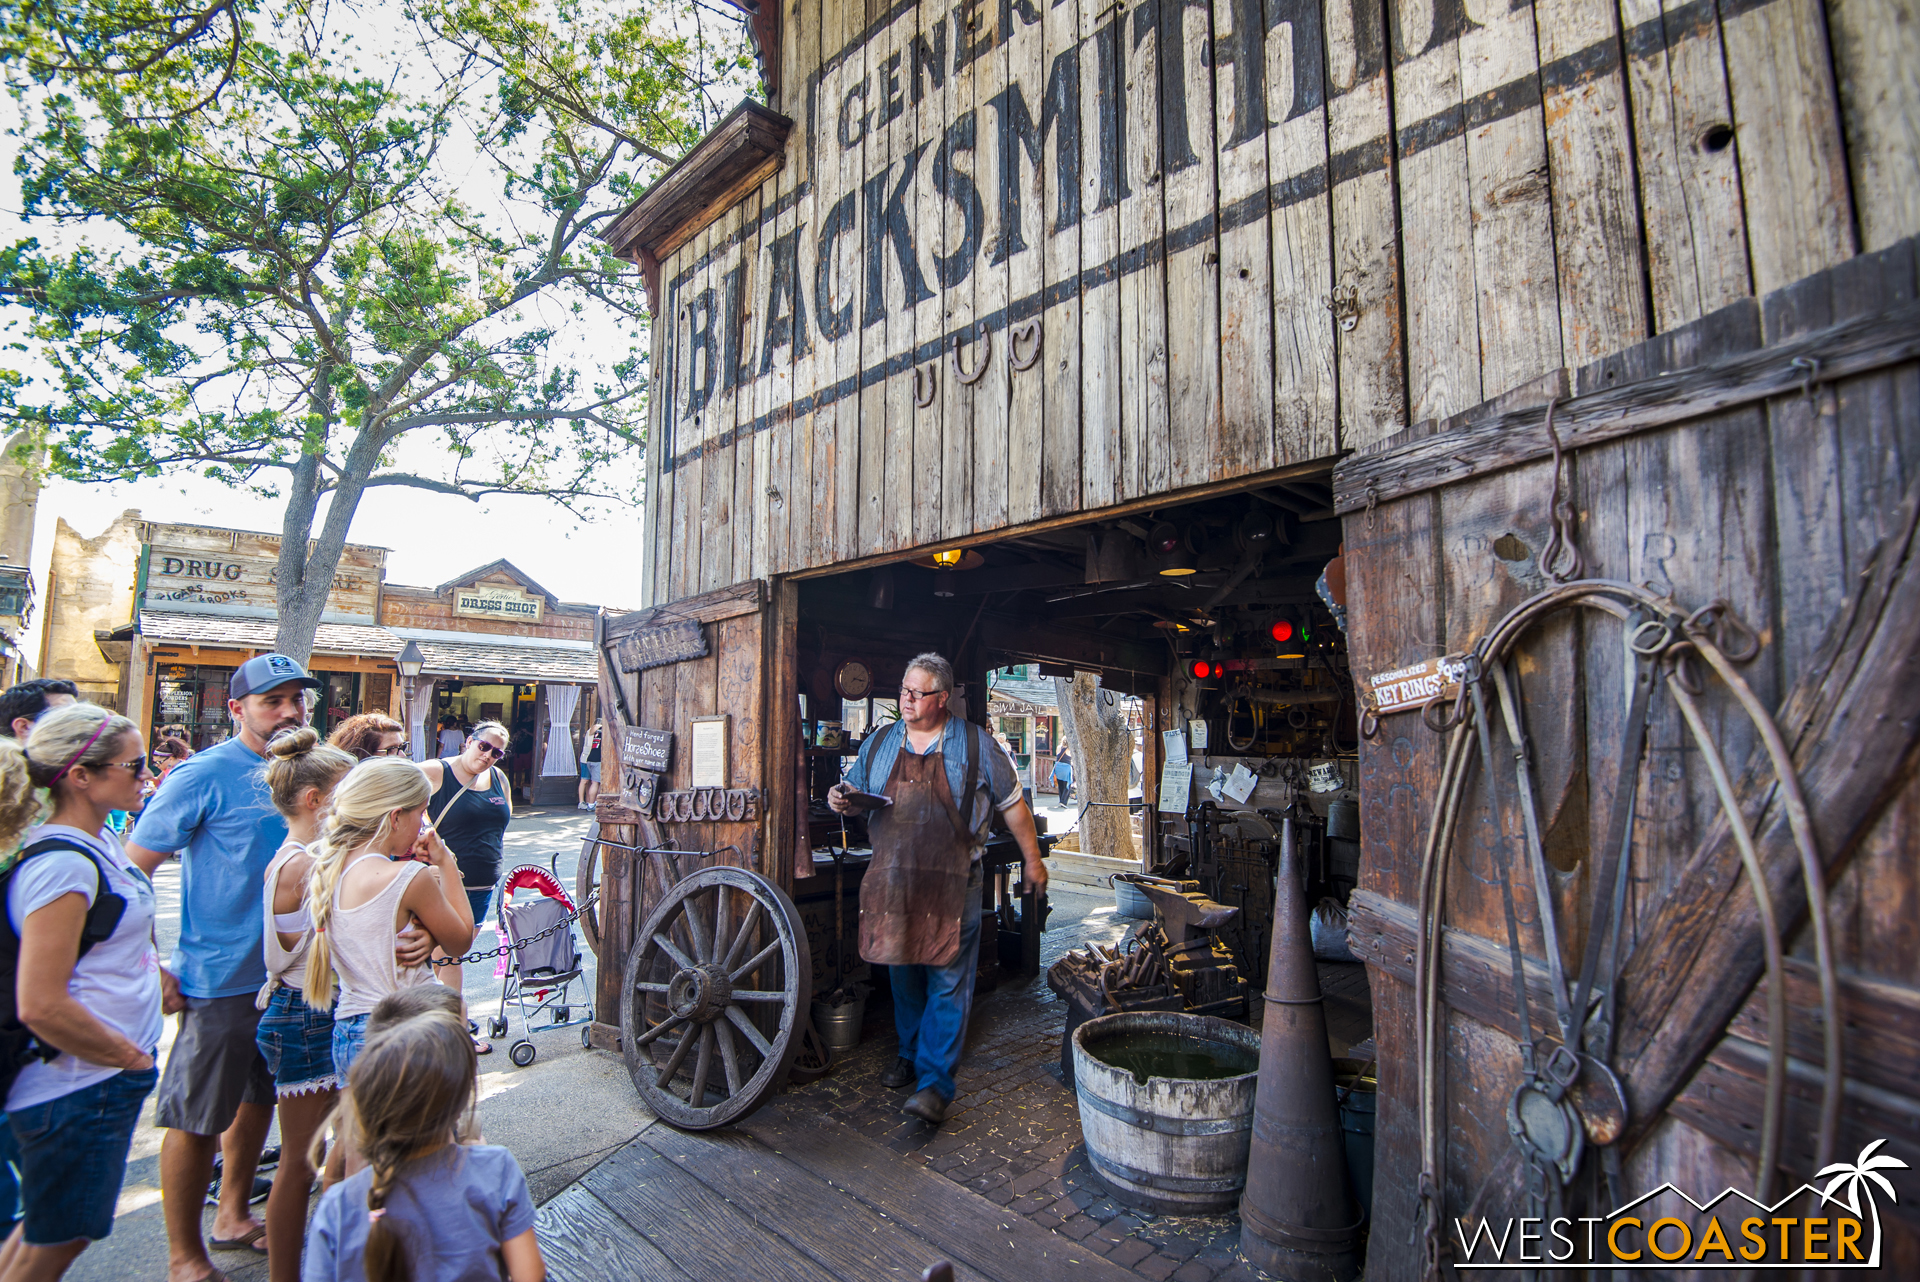 A crowd gathers around to see the town blacksmith at work.